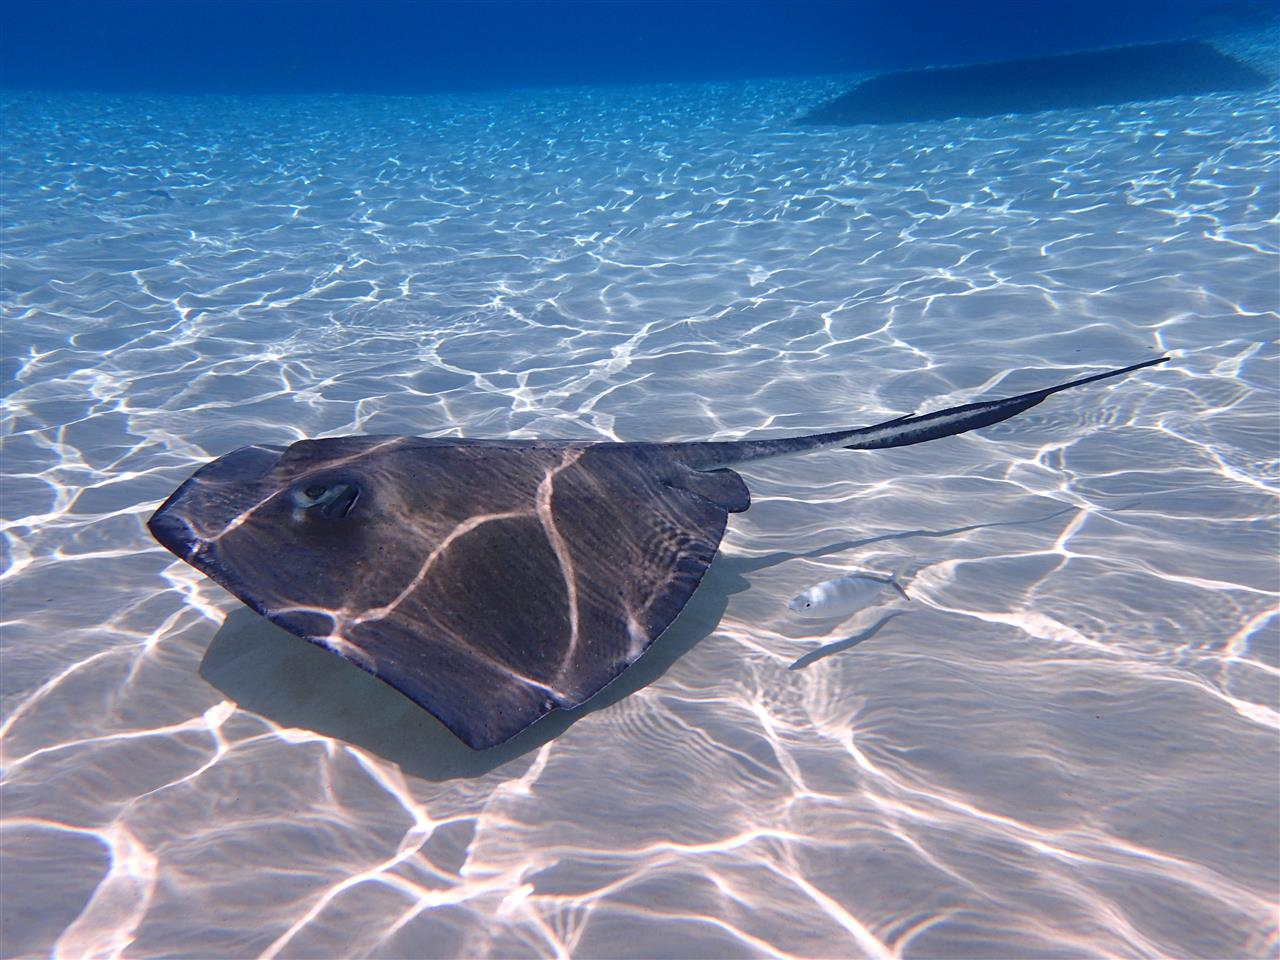 Stingray at Stingray City Sandbar